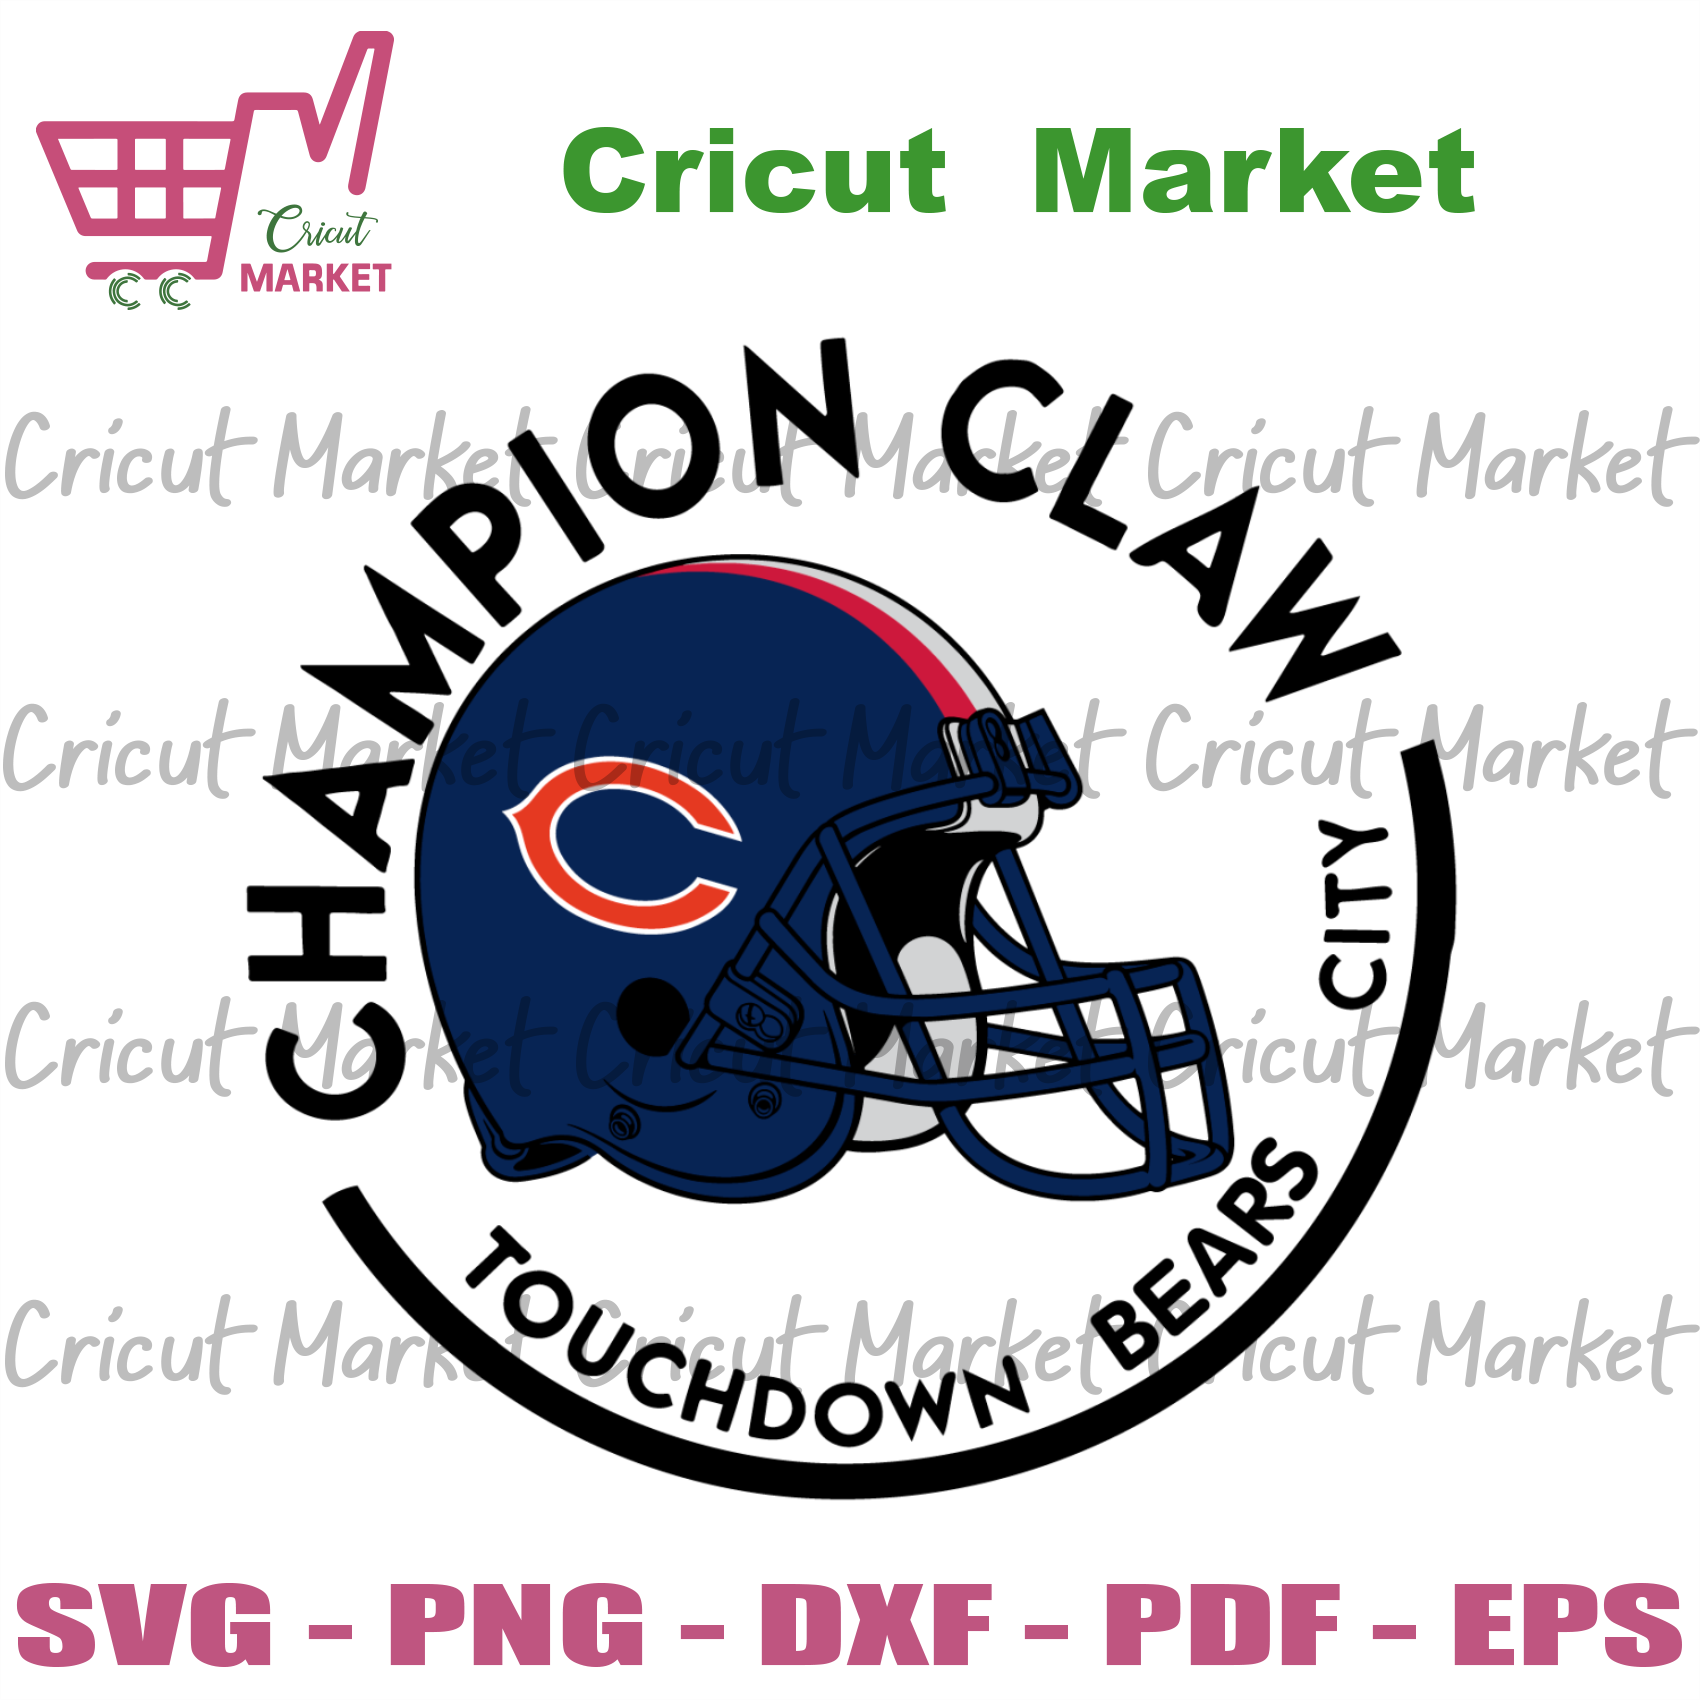 Champion Claw Touchdown Bears City Svg, Sport Svg, Chicago Bears Svg, Chicago Bears Football Team Svg, Chicago Bears Helmet Svg, Chicago Bears Logo Svg, Chicago Bears Fans, Bears Gifts Svg, C